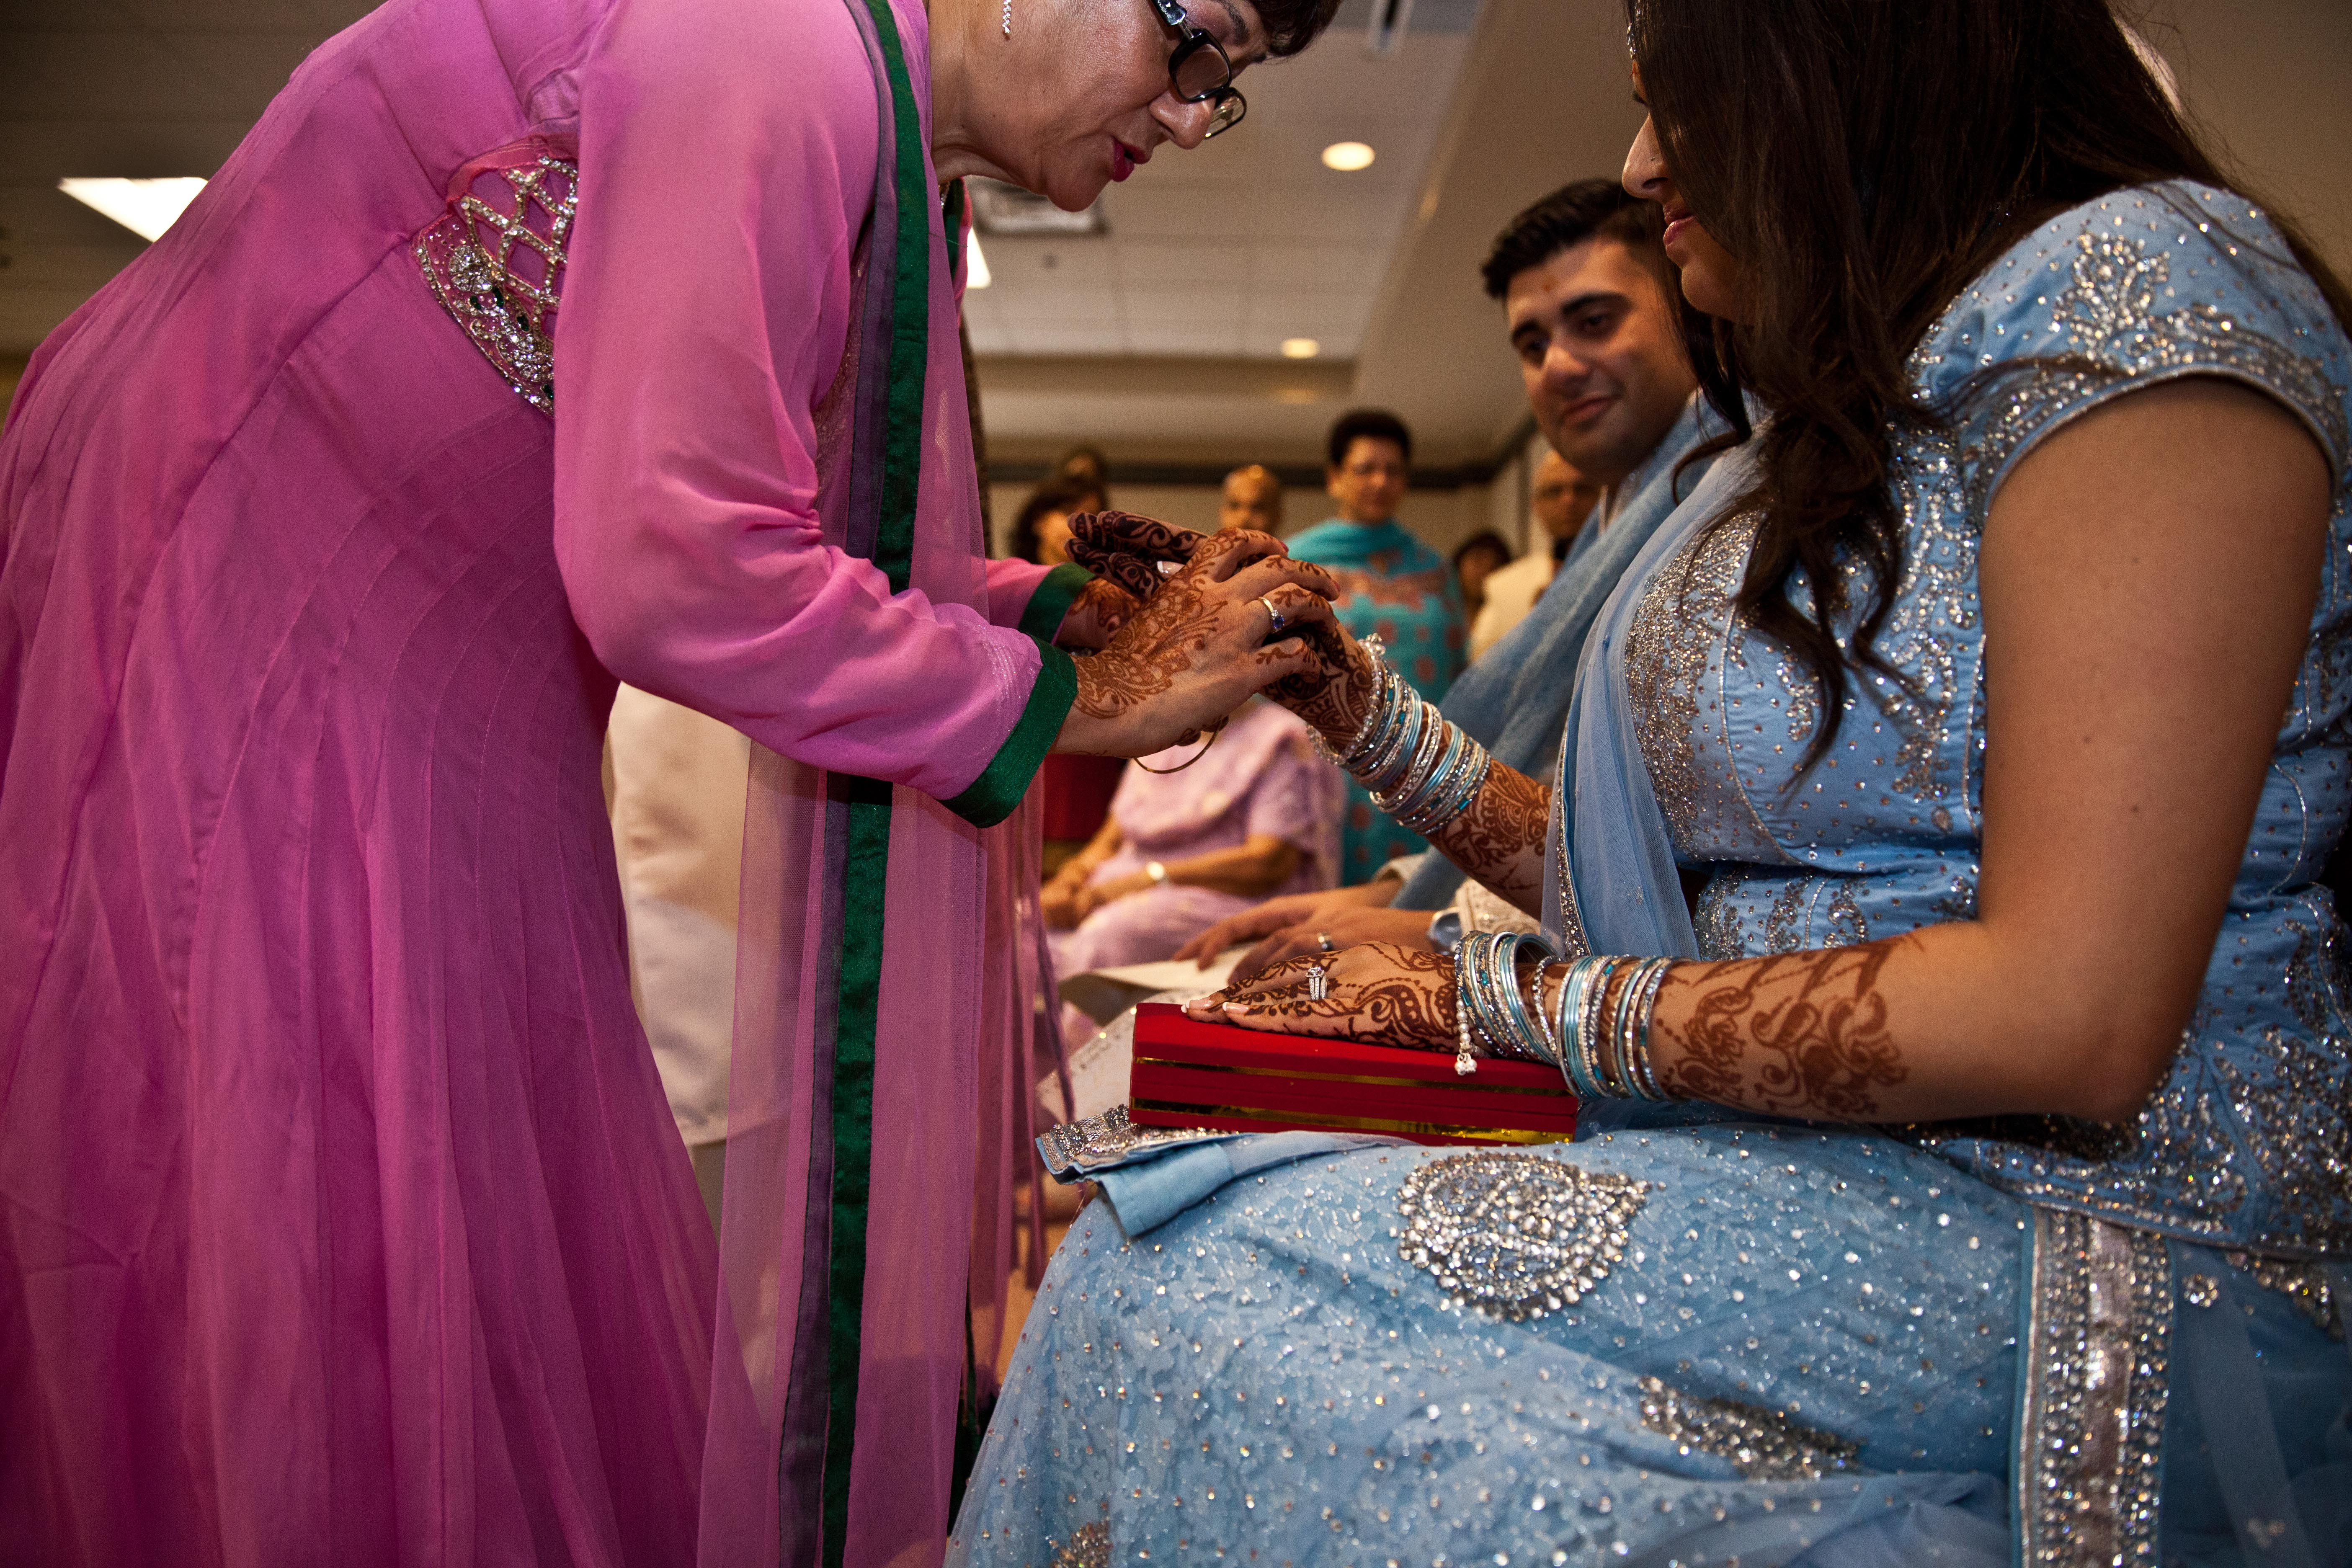 Mother of the groom slipping bangles on the bride's wrists during the Puro ceremony in a Toronto Ismaili Muslim wedding